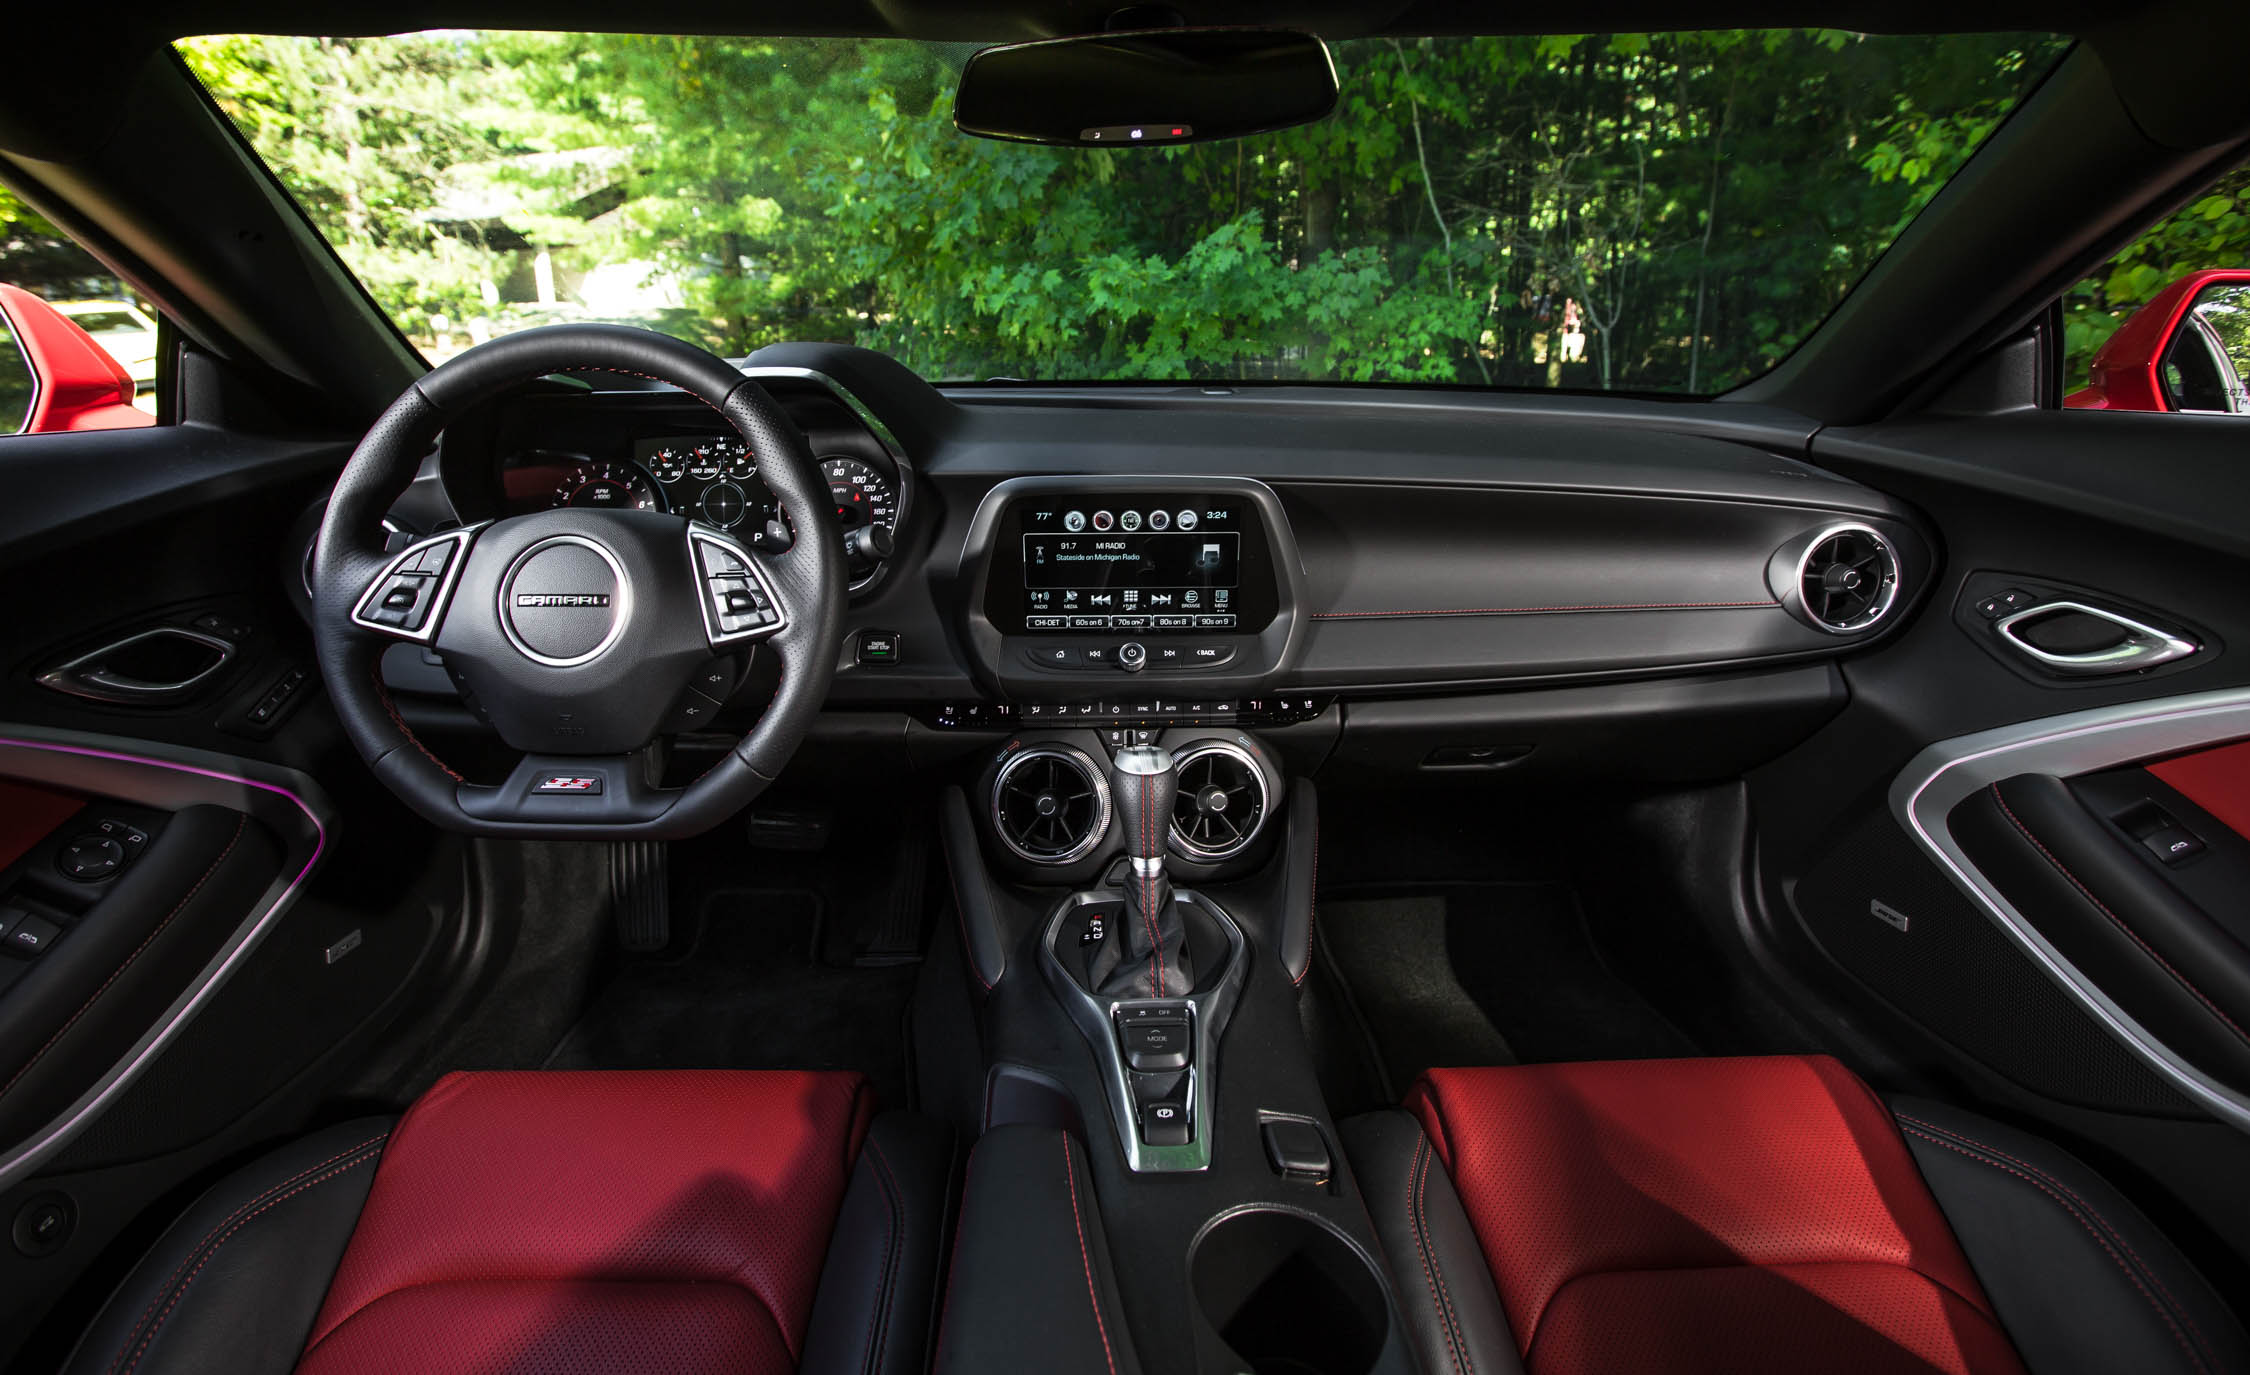 2016 chevrolet ss interior - photo #8